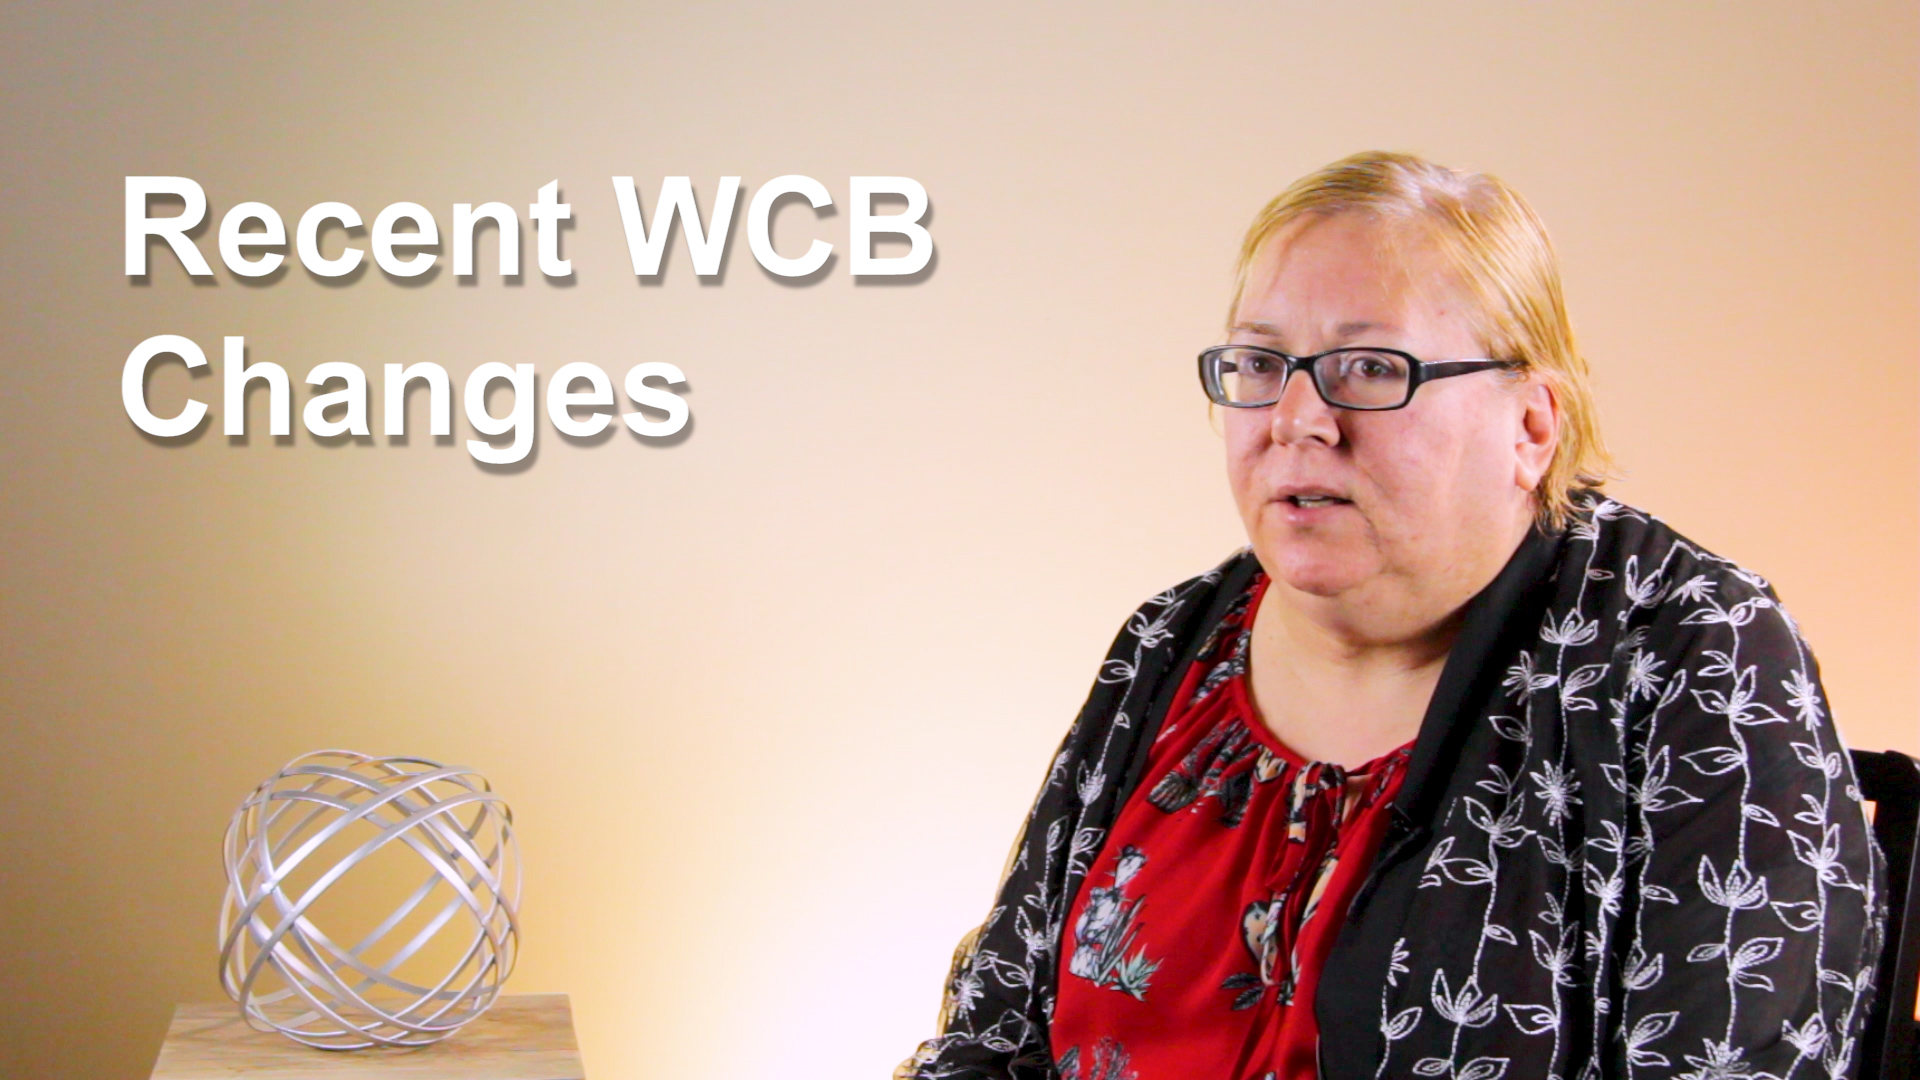 Barbara Semeniuk on 2018 WCB Changes